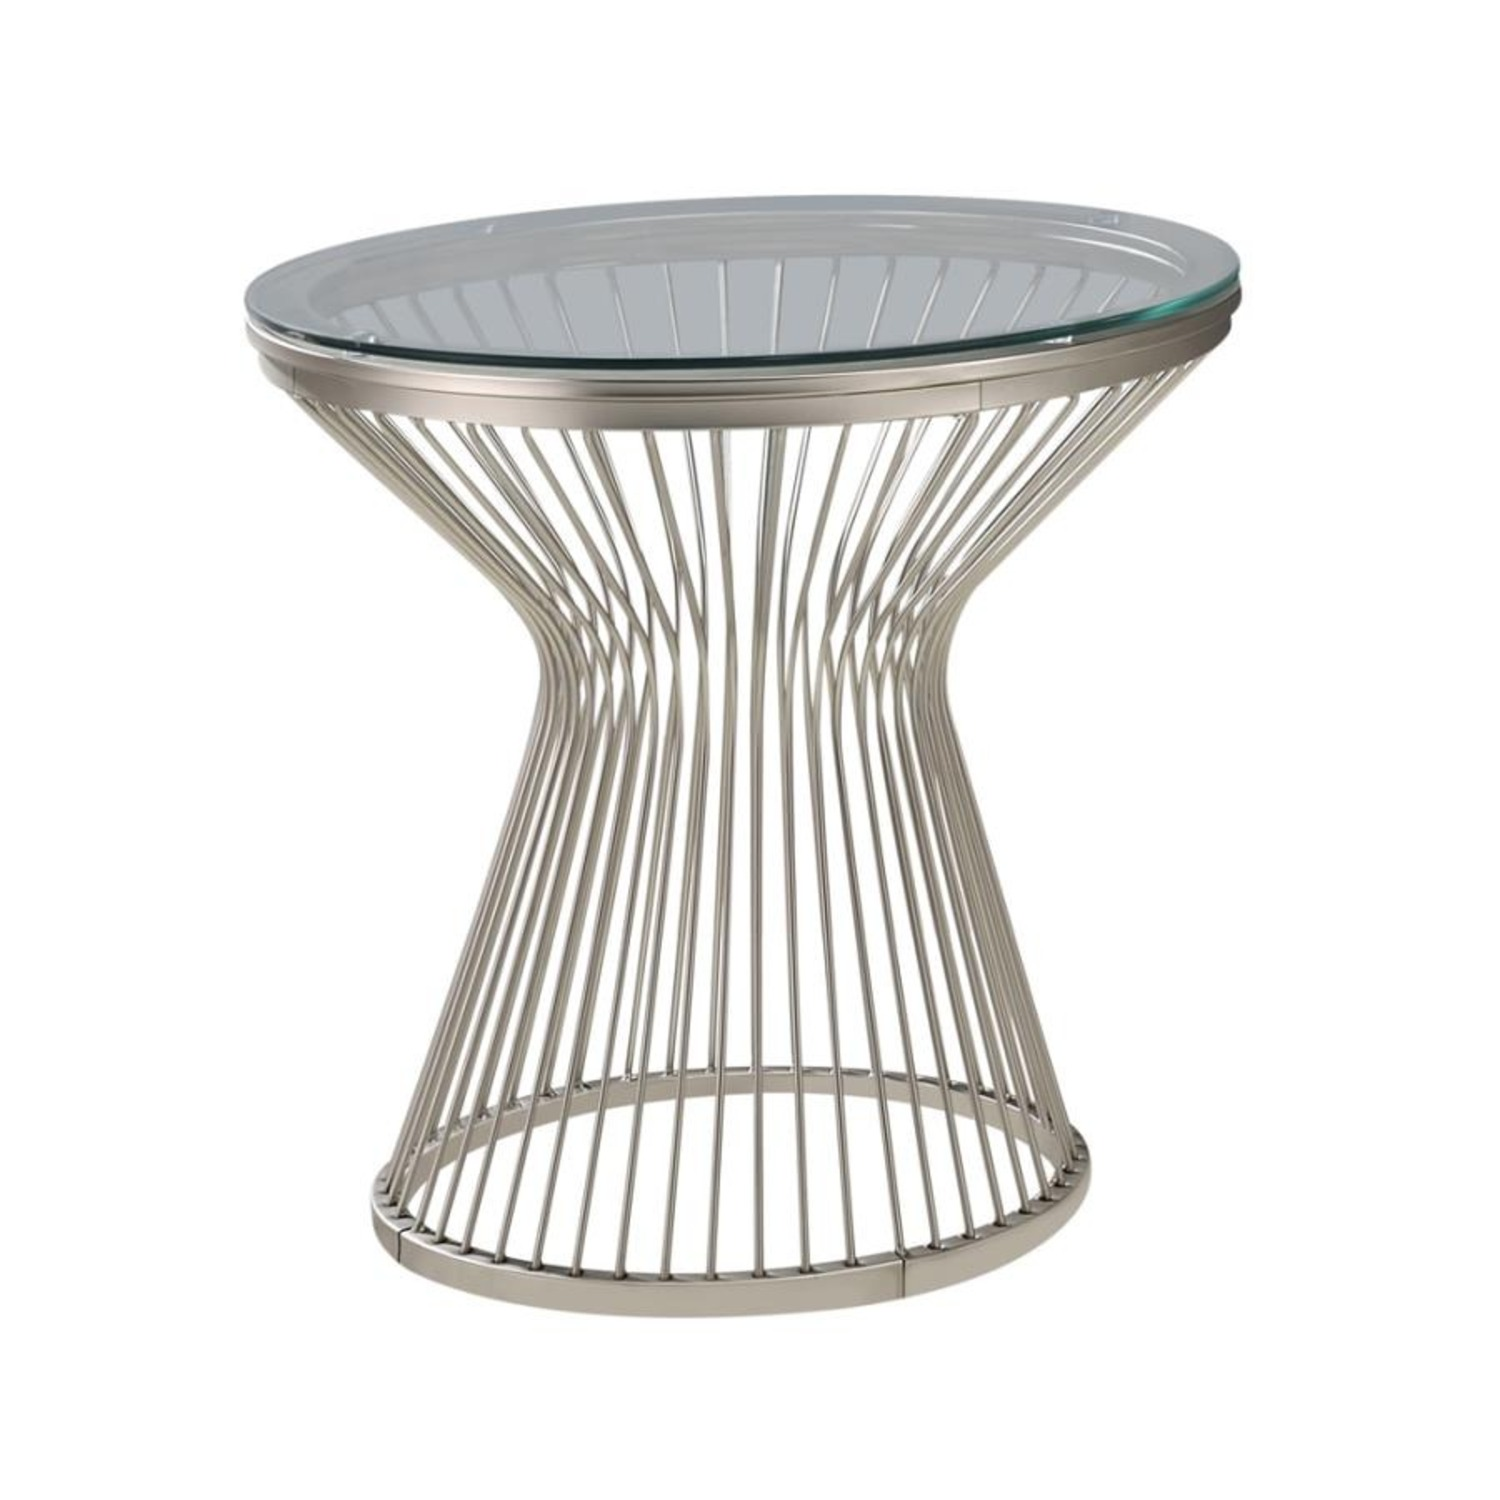 End Table In An Hourglass Shaped Base  - image-1